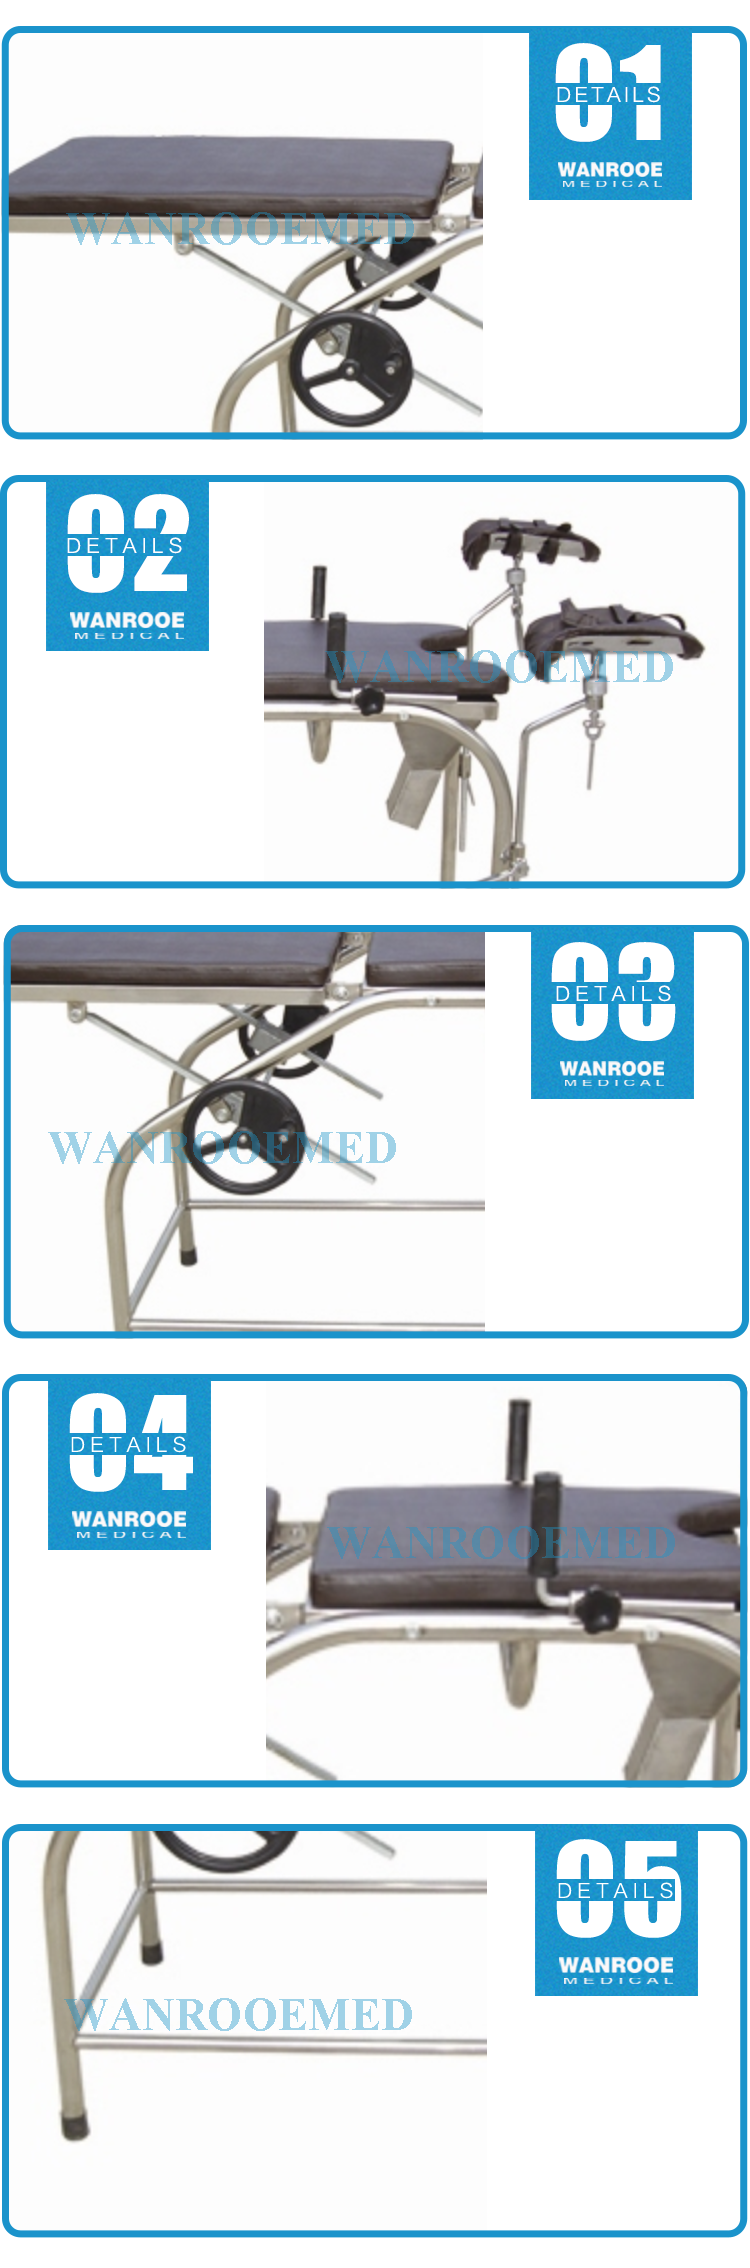 Gynecology Examination Chair, Gynecology Examination Table, Delivery Bed, Obstetric Chair, Manual Obstetrics Table